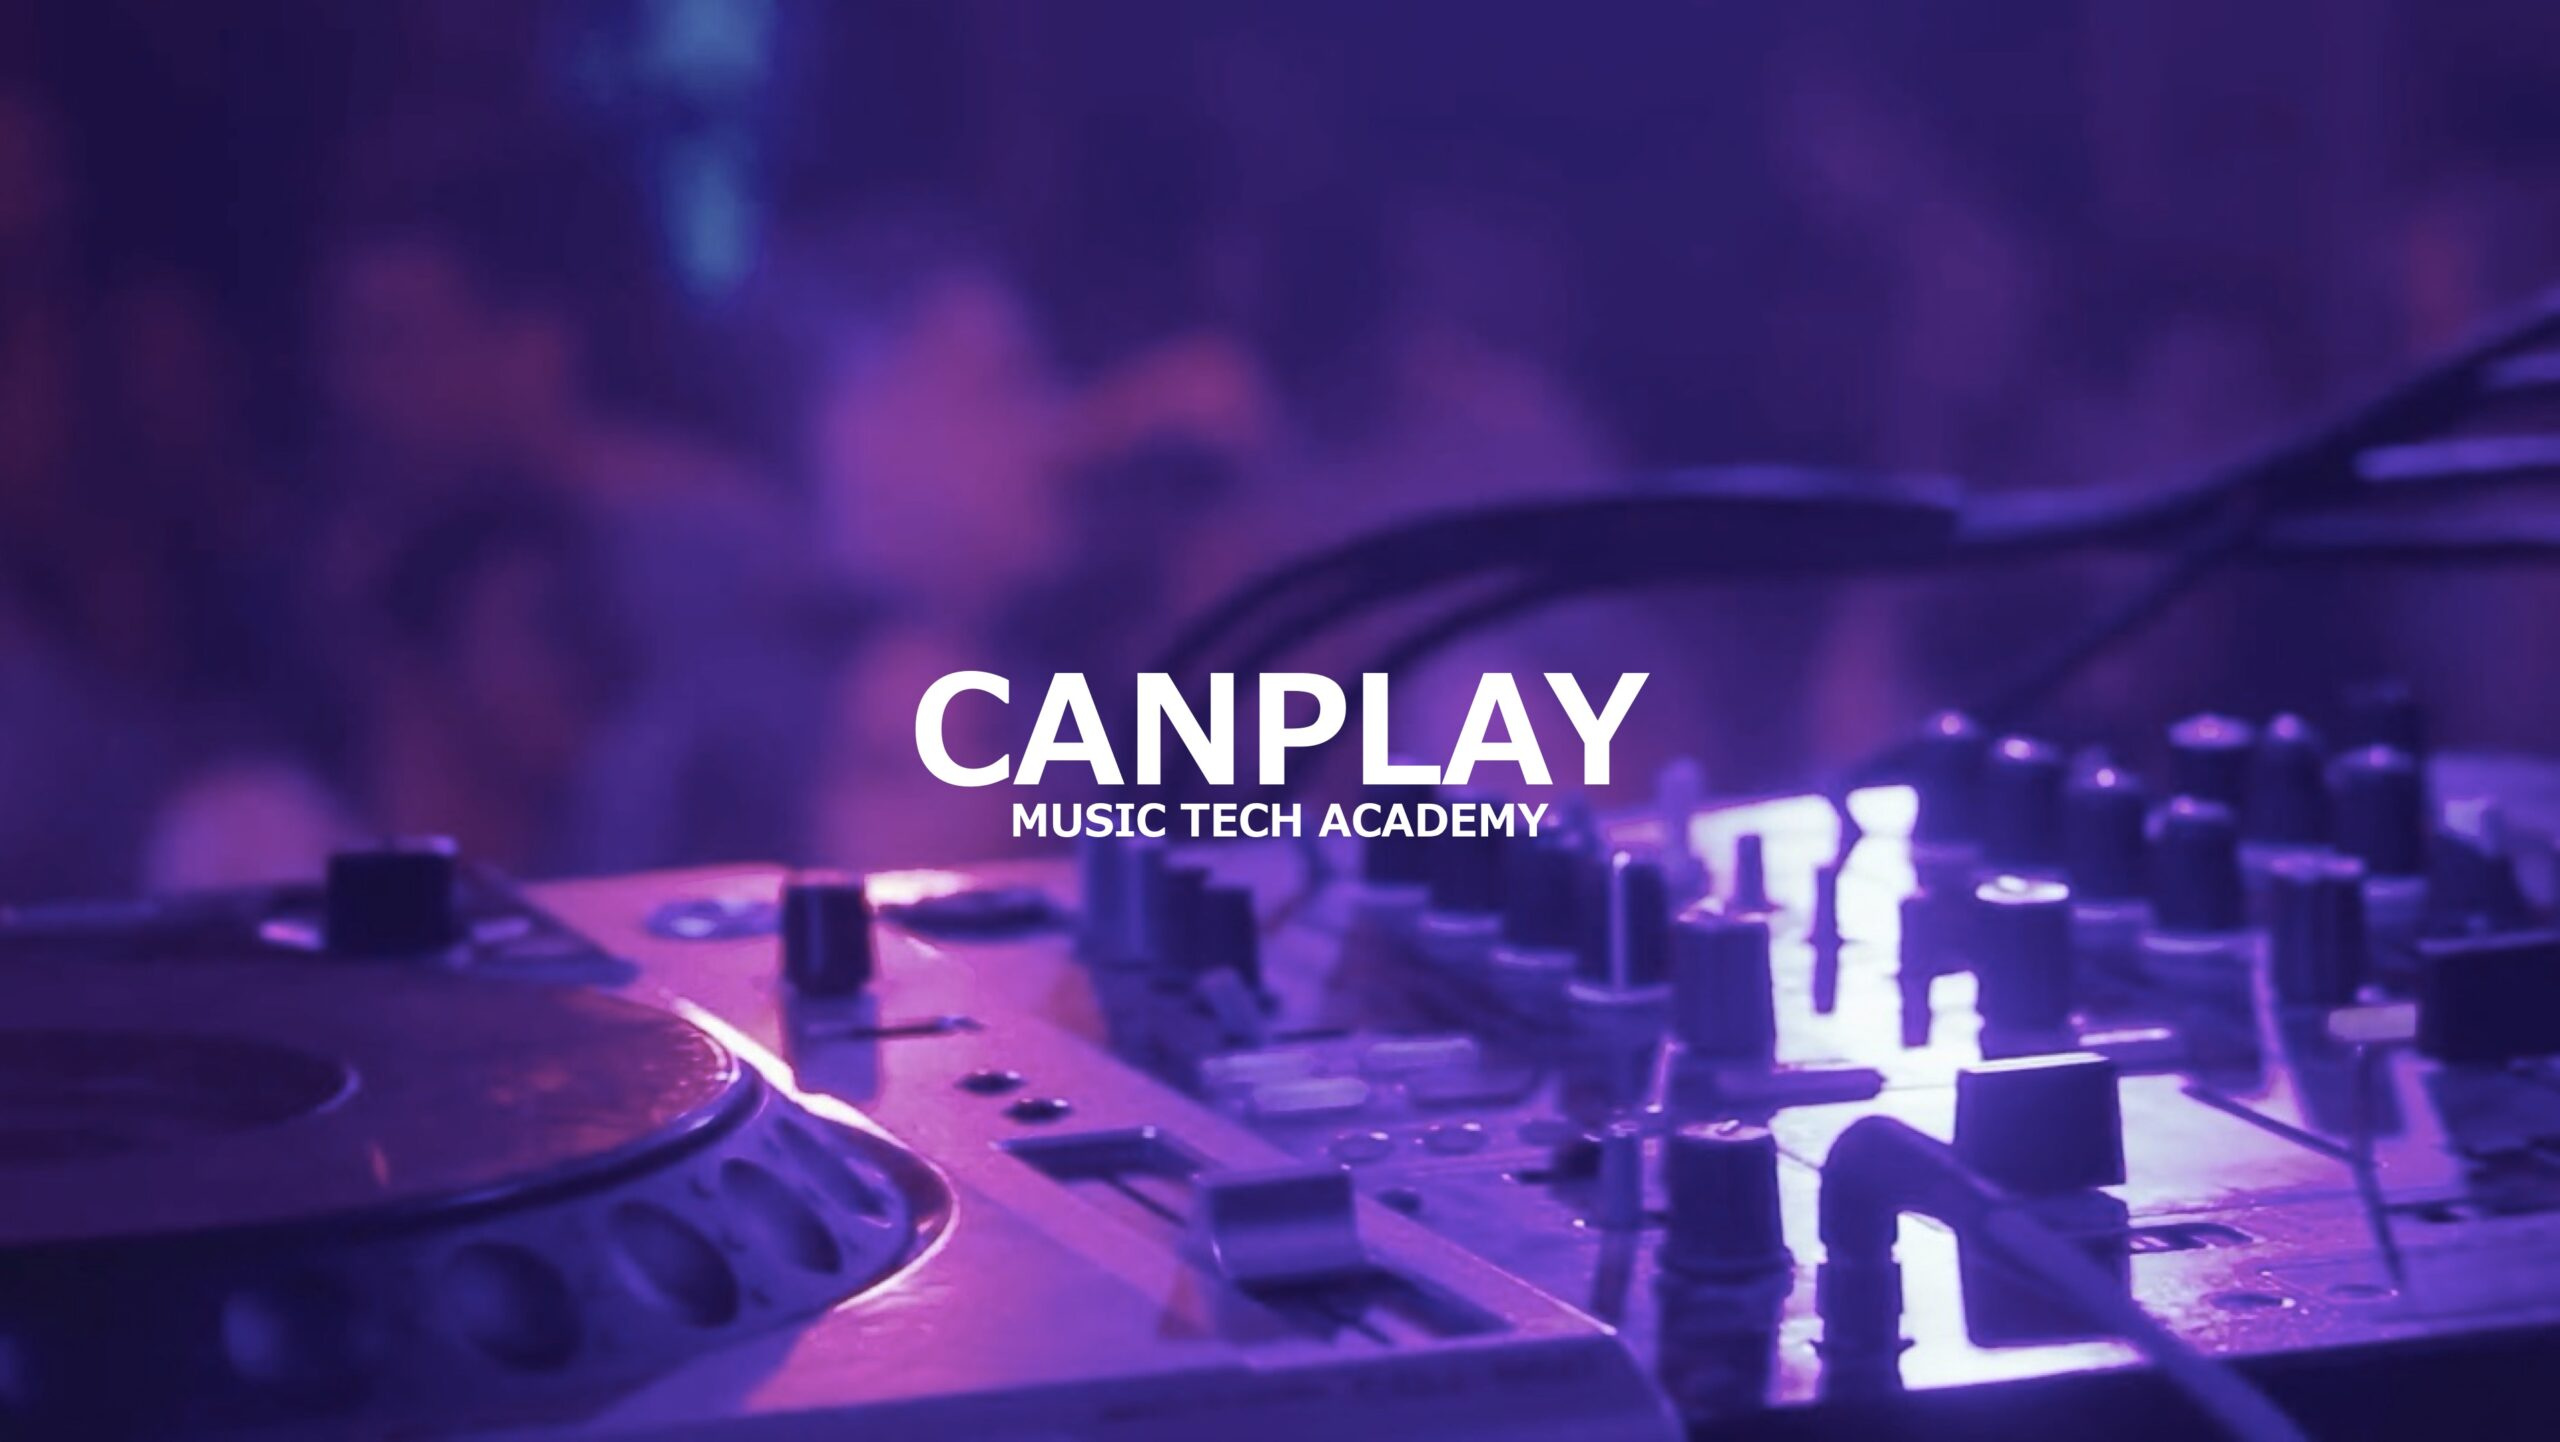 MUSIC TECH ACADEMY CANPLAY